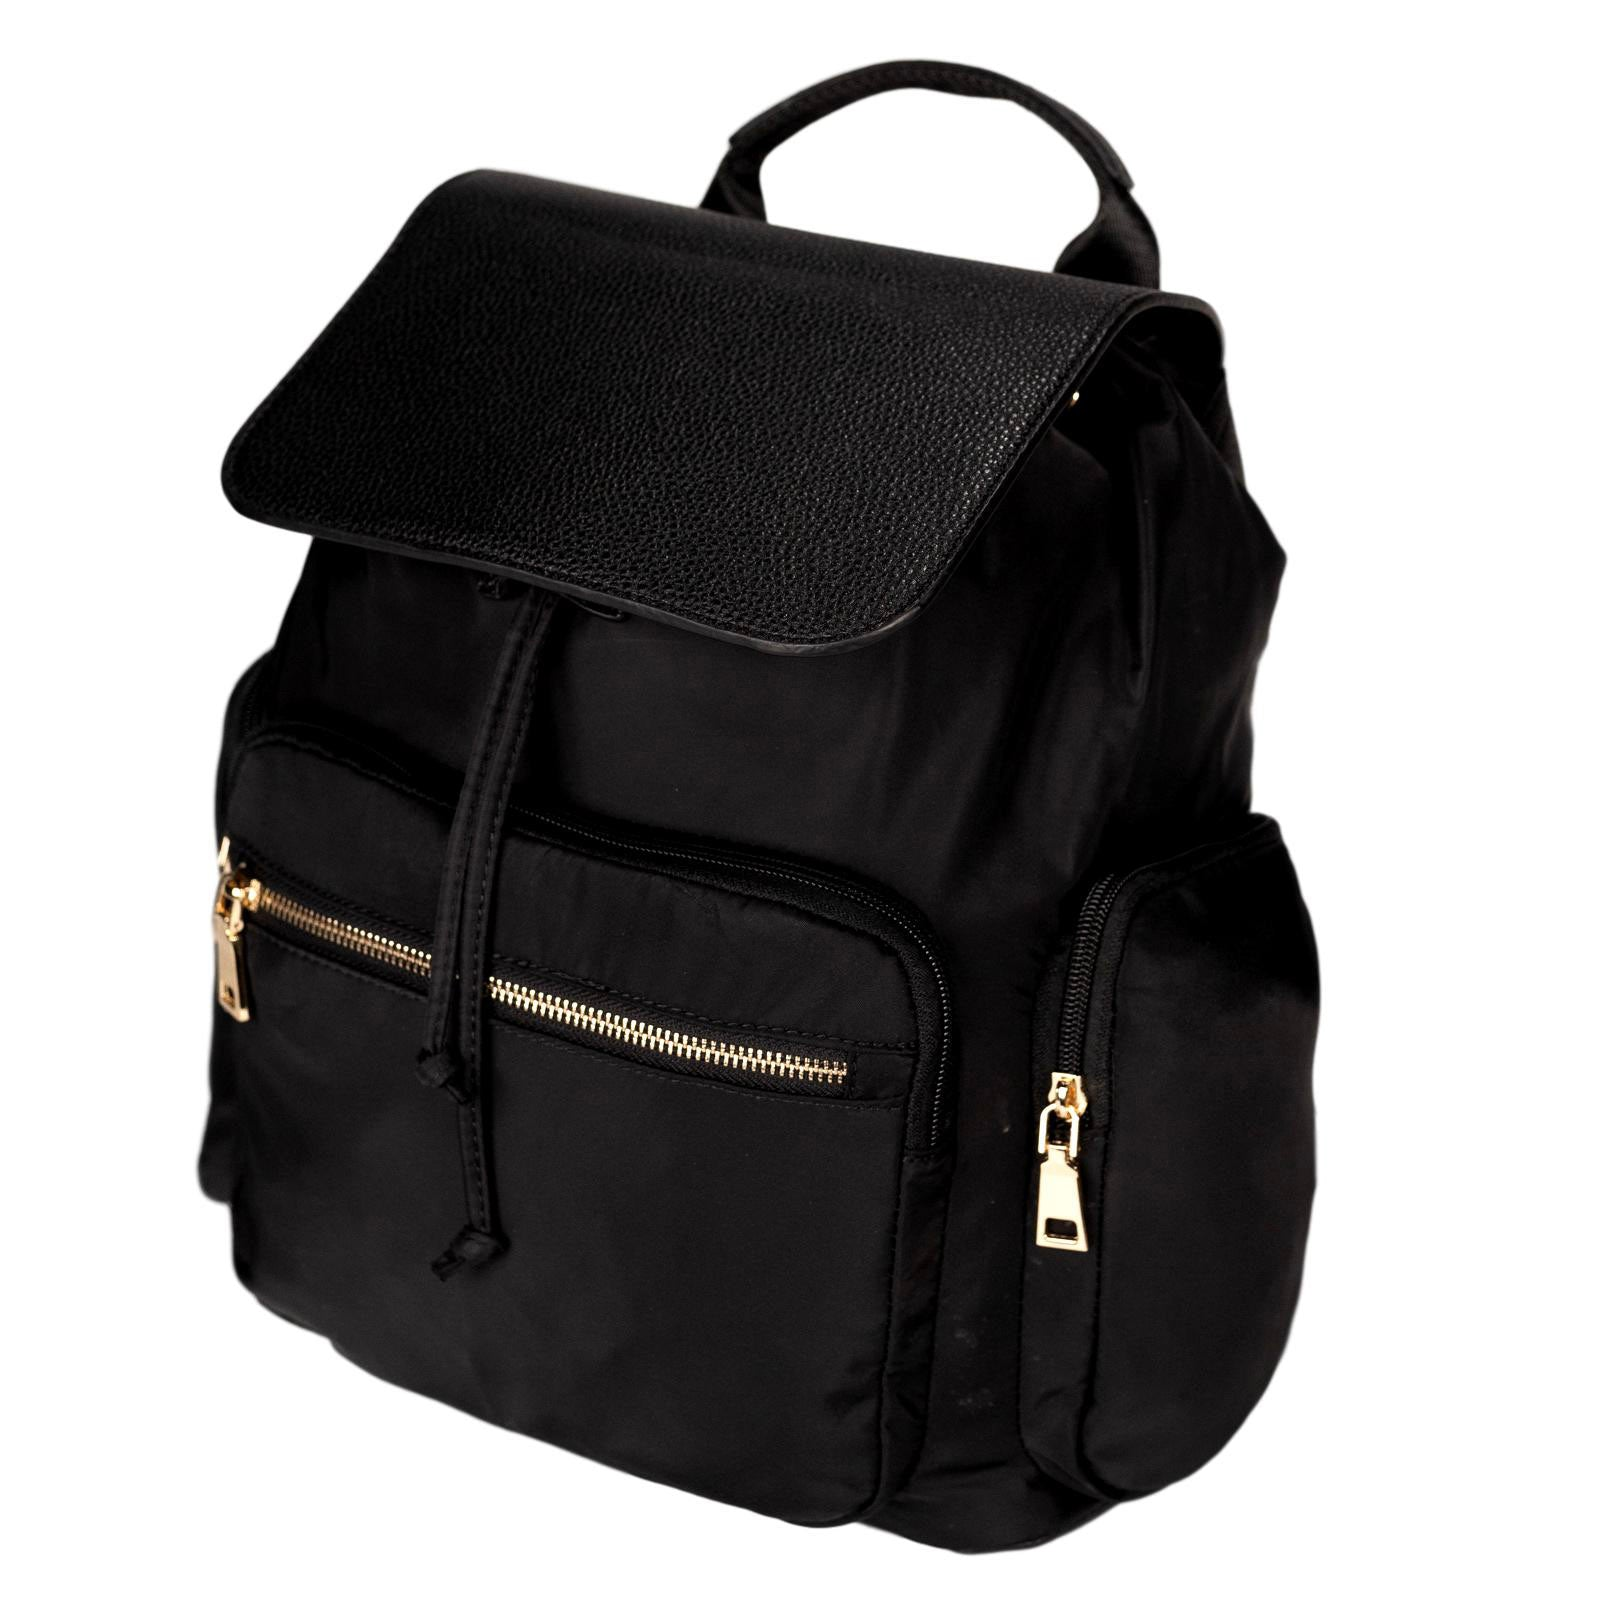 Mon Purse Nylon Hunter Rucksack in Black